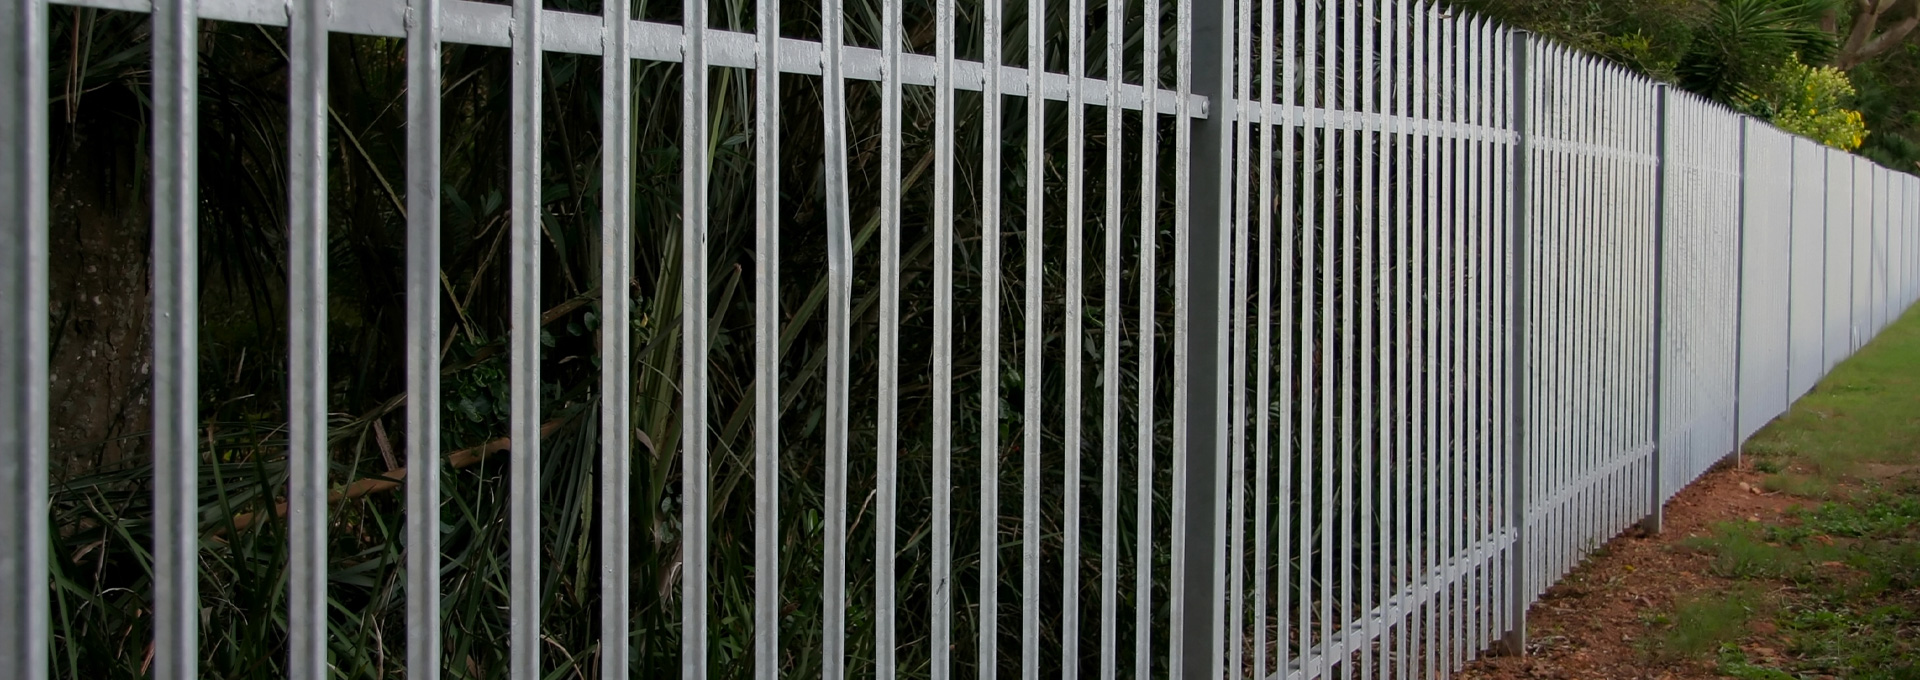 Strong metal fence fitted by Outback Landscapes experts.